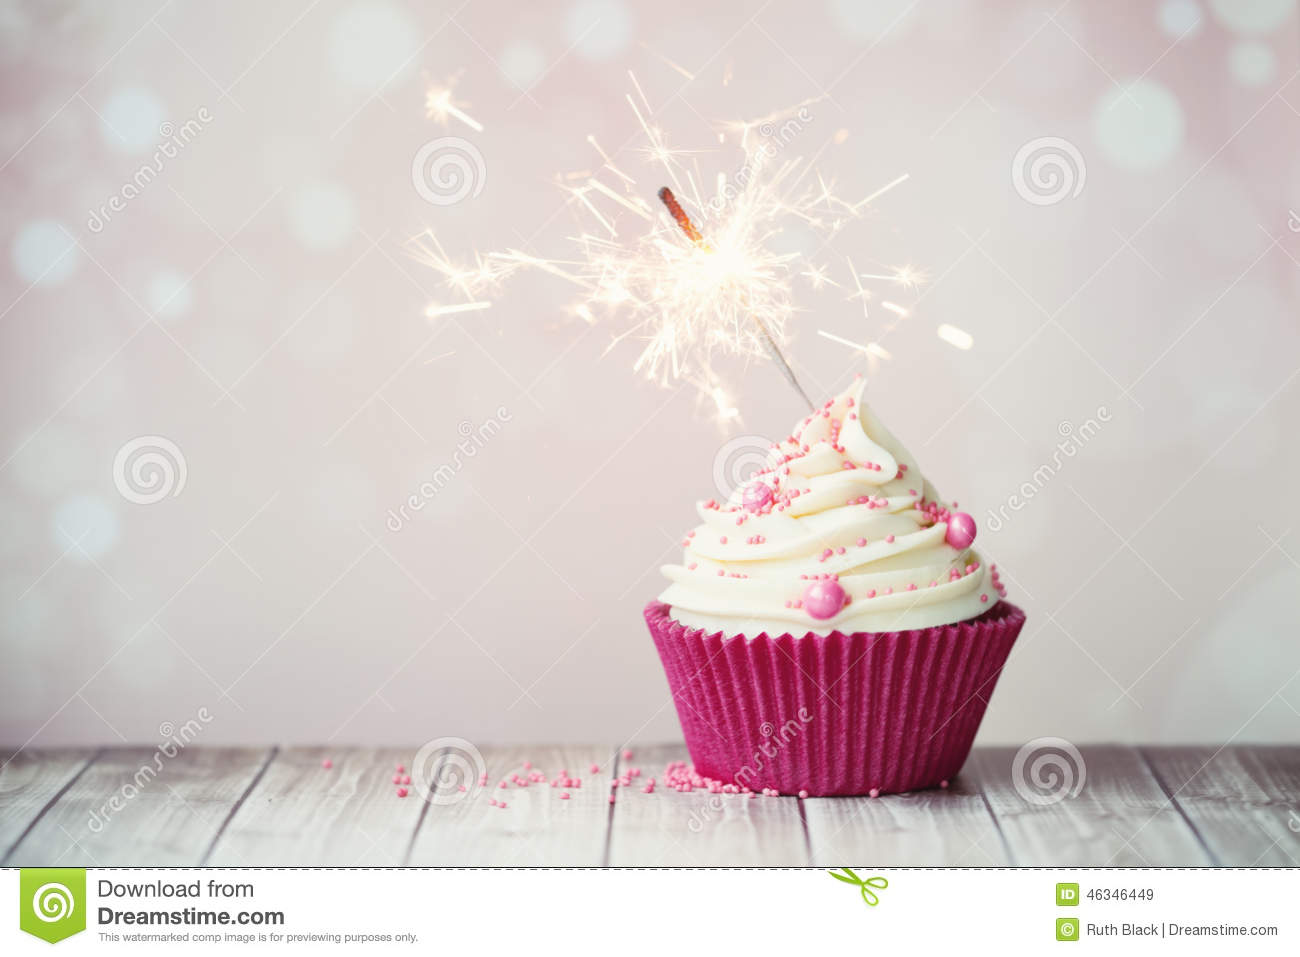 Pink Cupcake With Sparkler Stock Photo - Image: 46346449